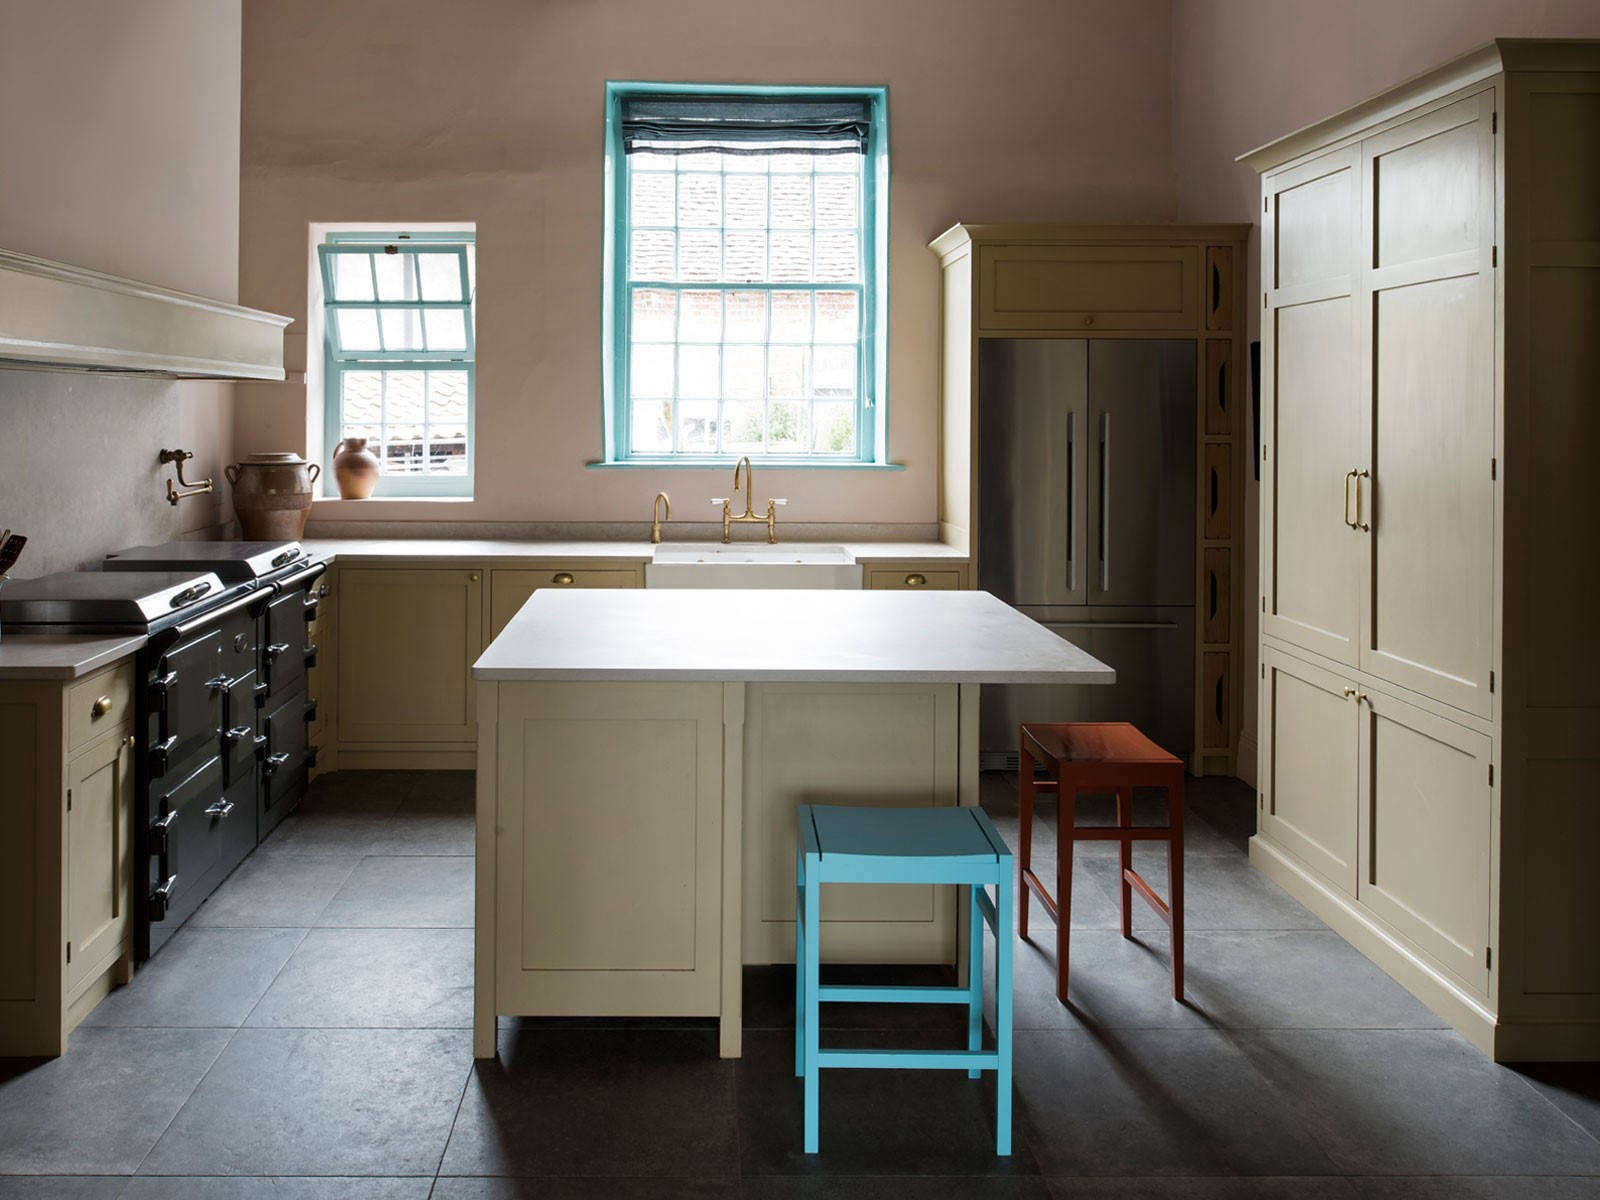 Shades of brown are offset with bright turquoise green paint. Photography byLeigh Simpson, courtesy of Inglis Hall from Kitchen of the Week: An Unexpected Palette in a Custom Kitchen Designed by Inglis Hall.